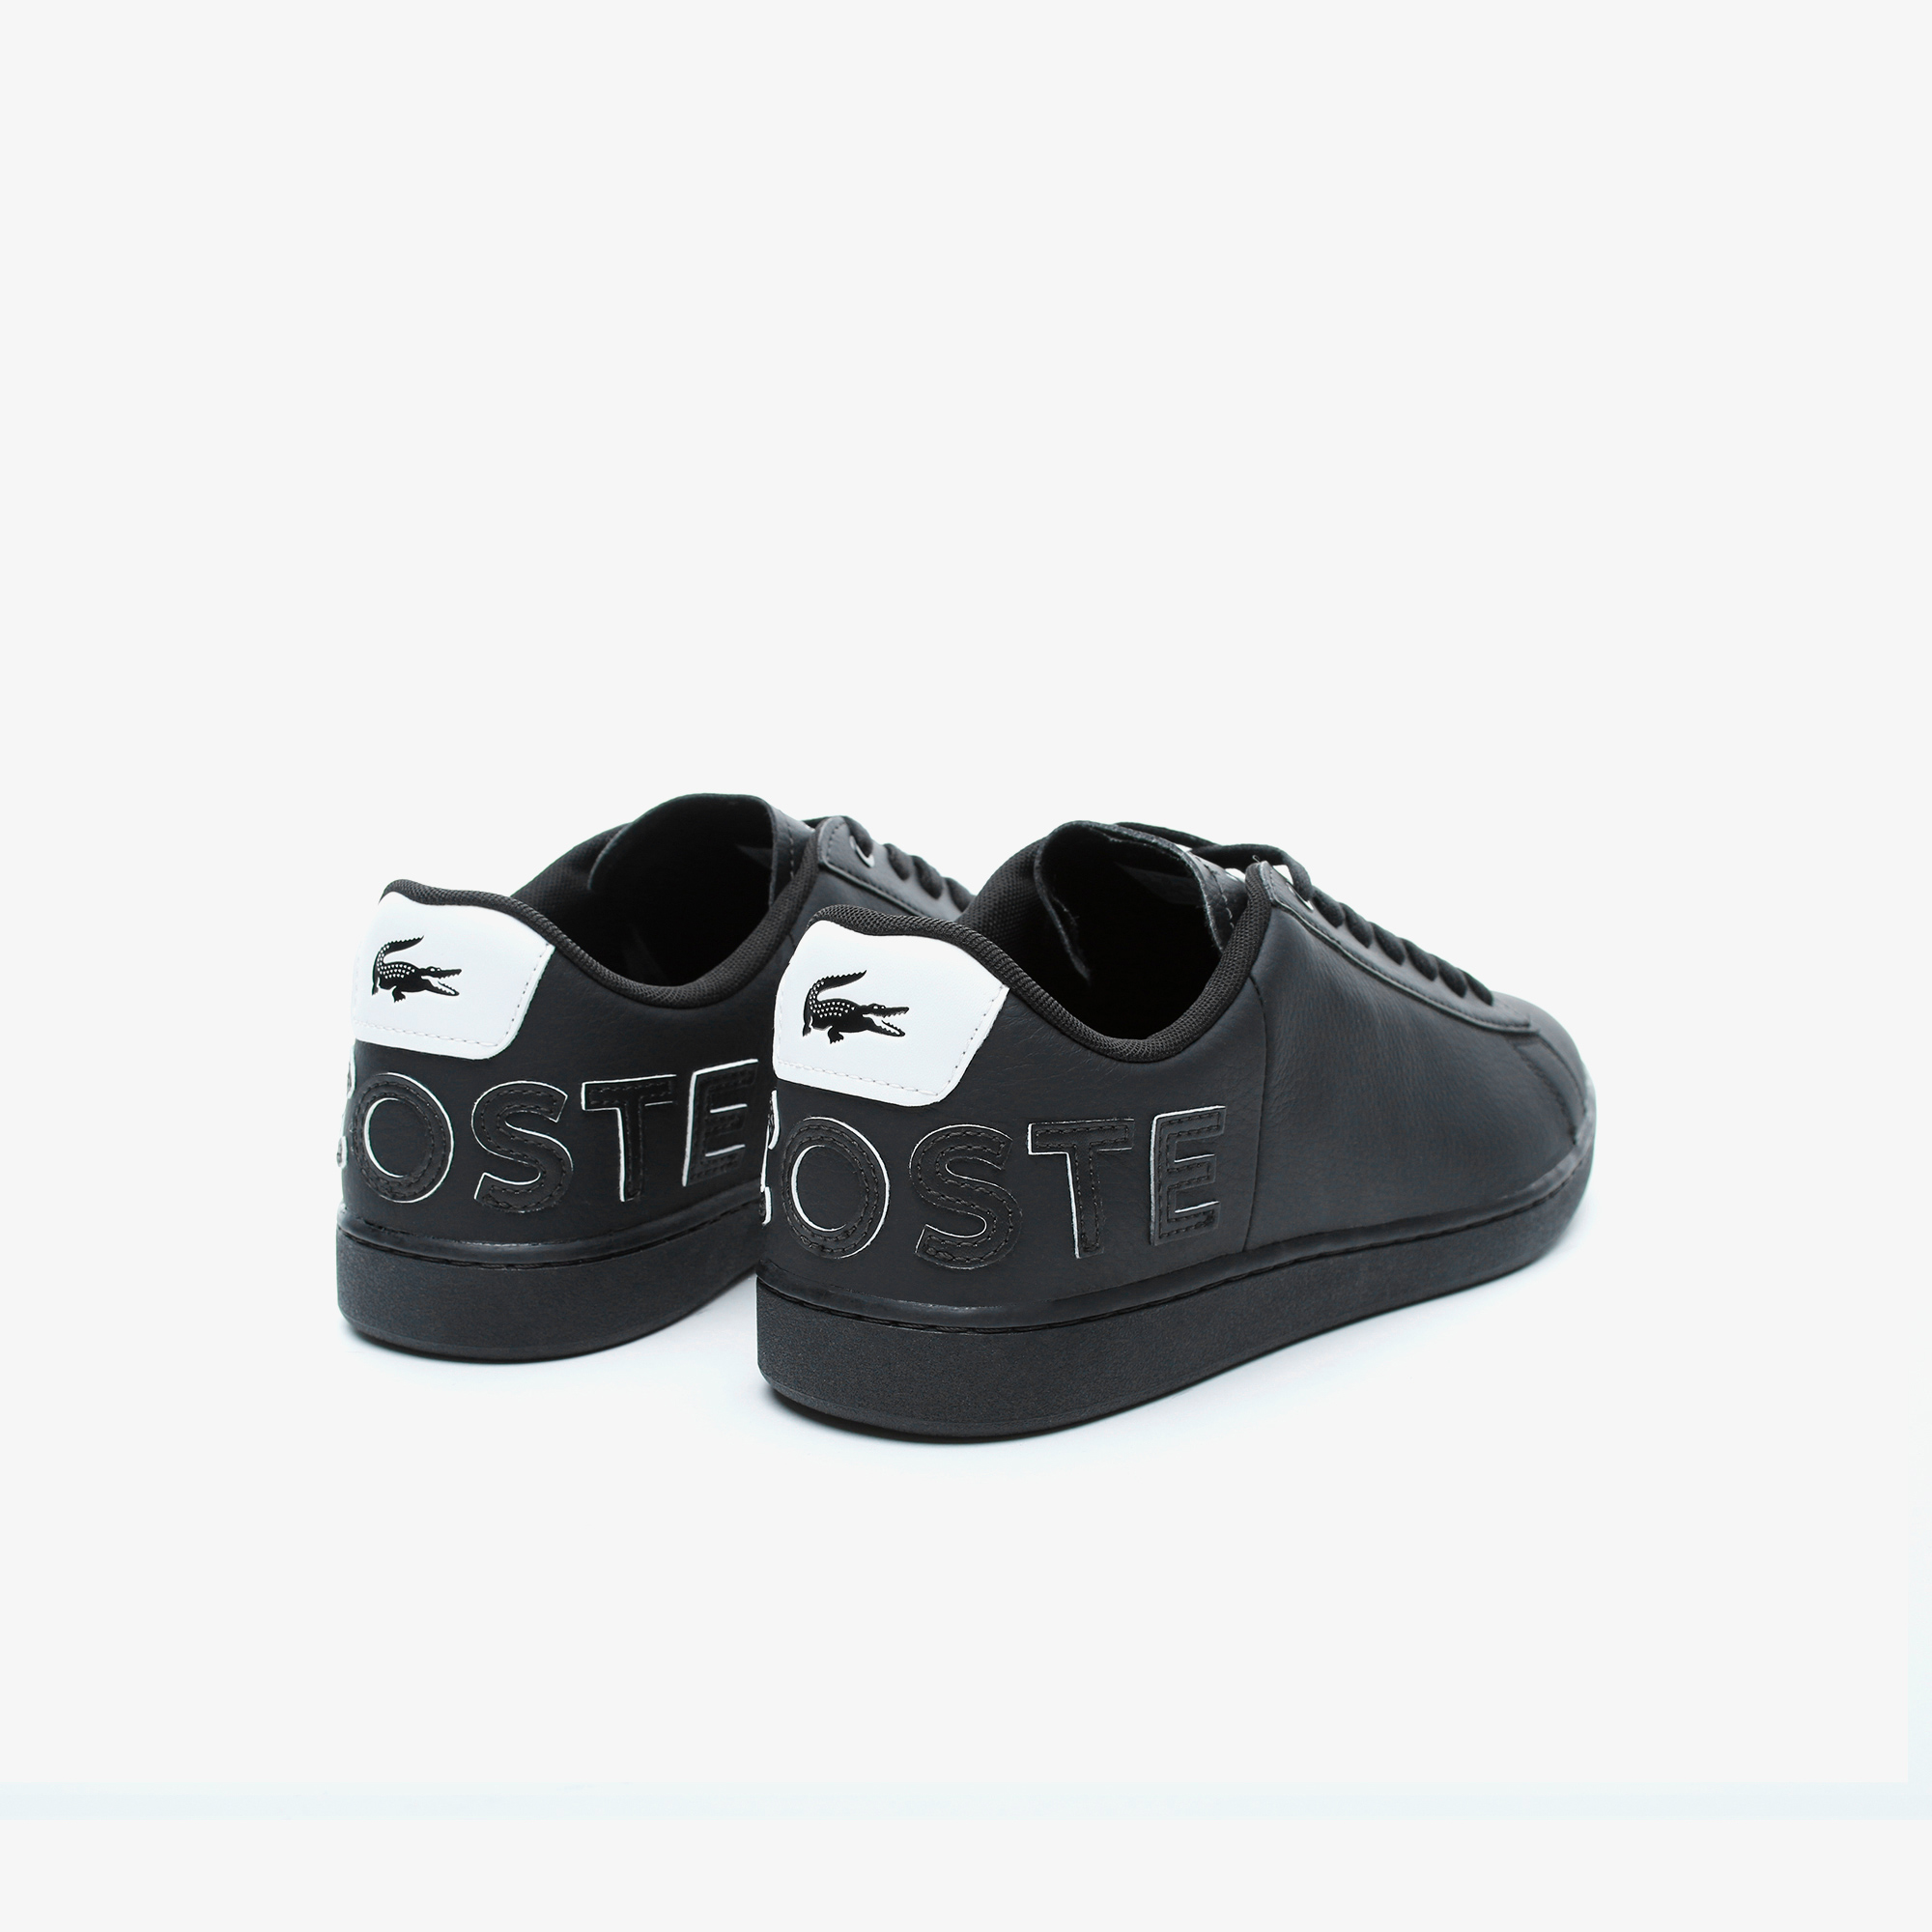 Lacoste Men's Carnaby Evo 120 7 Us Sma Leather Sneakers